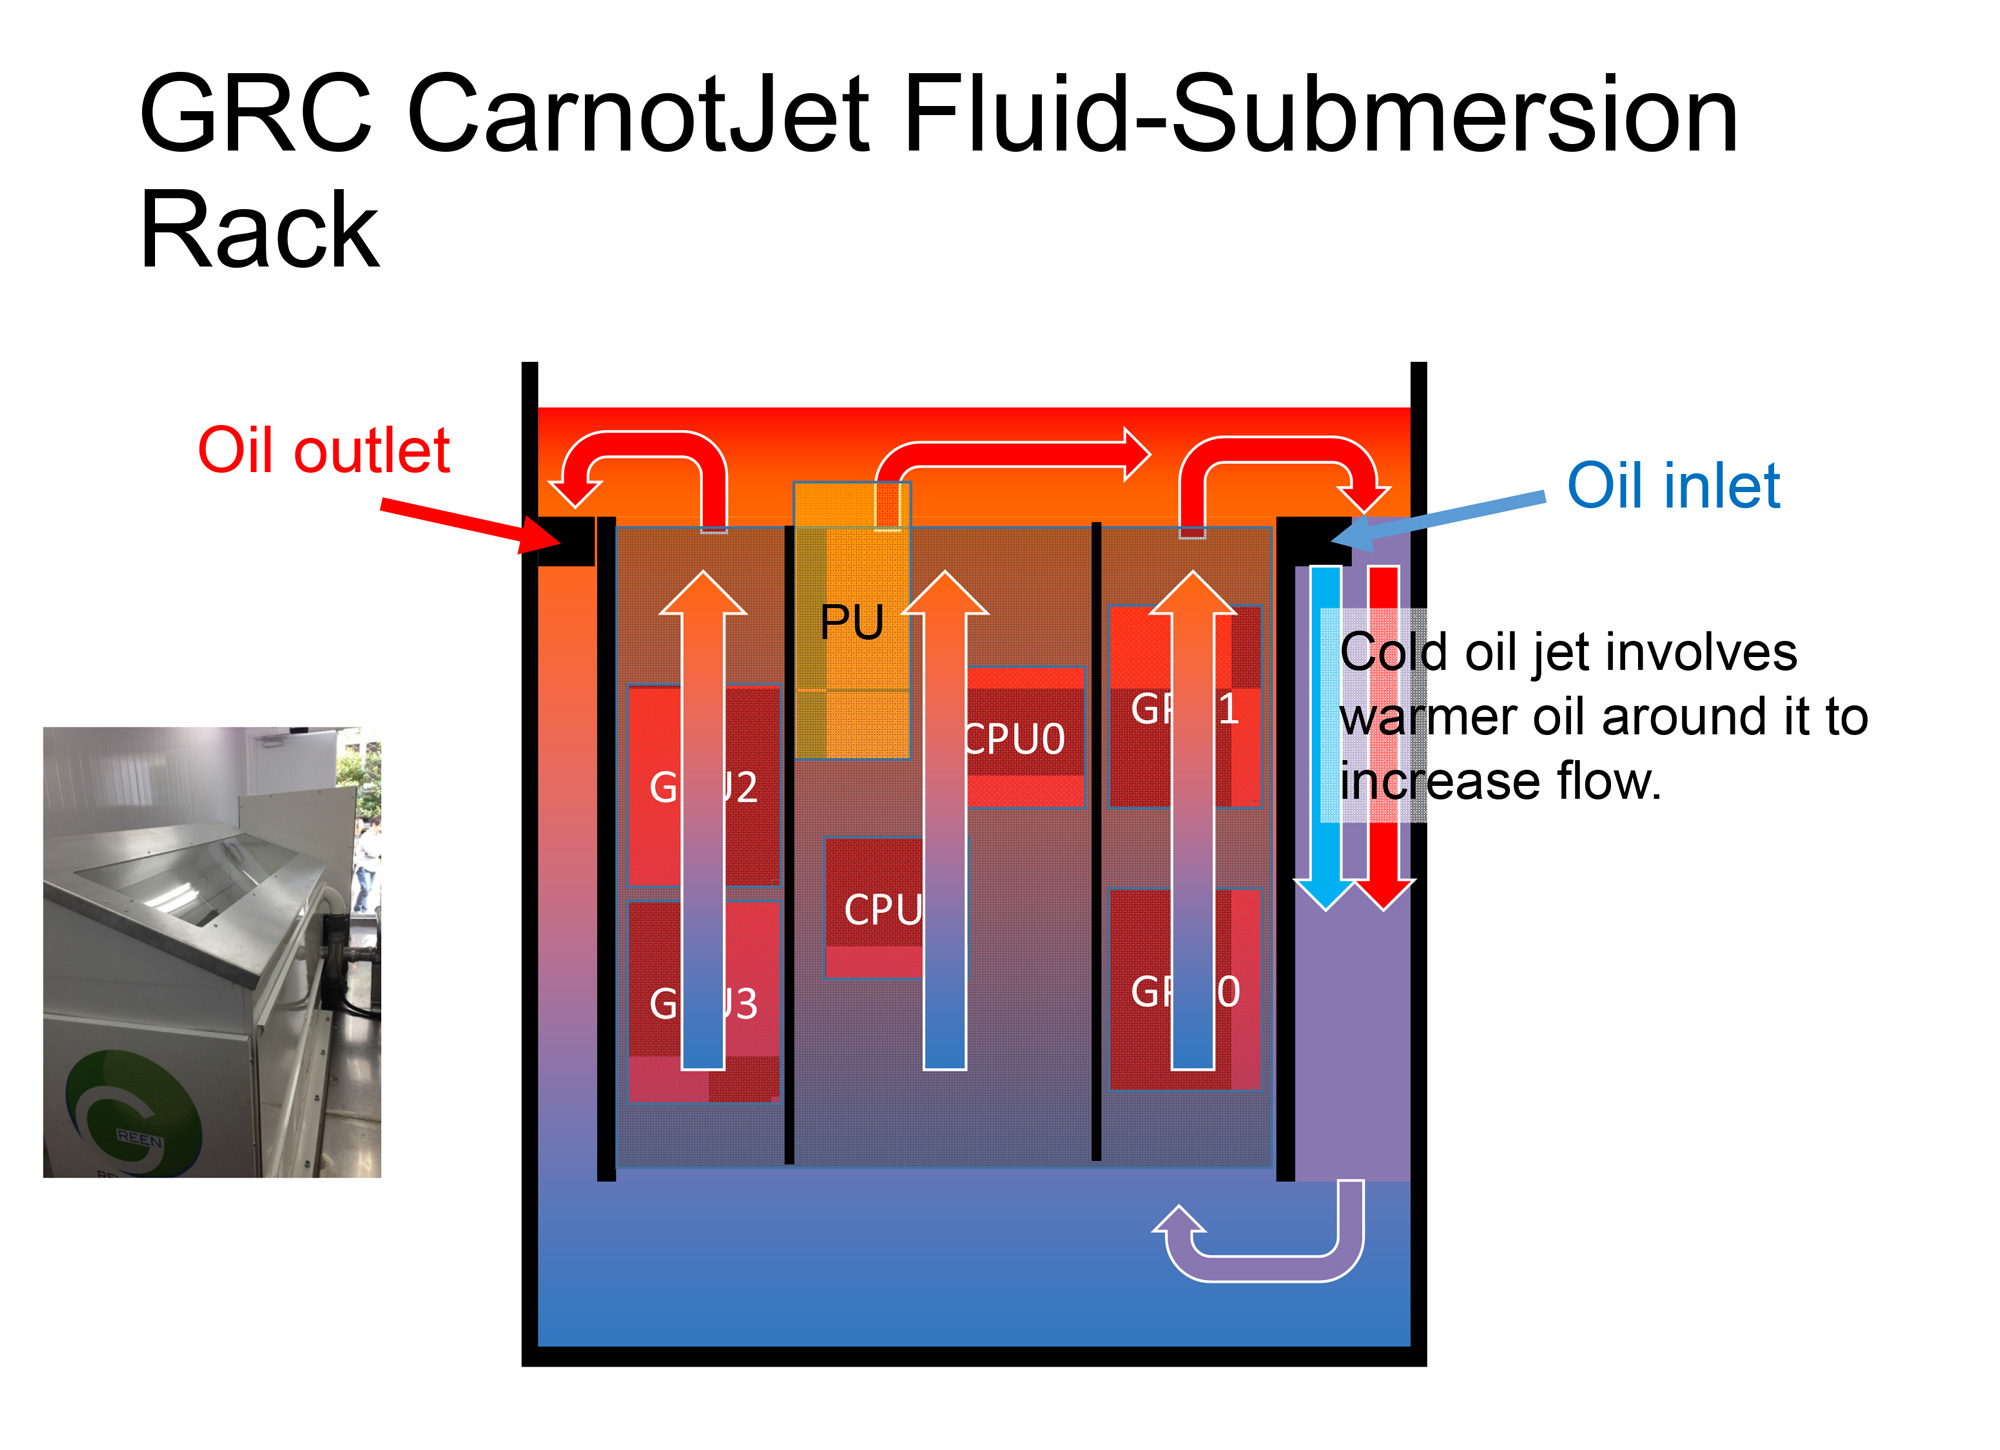 KFC CarnoJet Fluid-Submersion Rack image